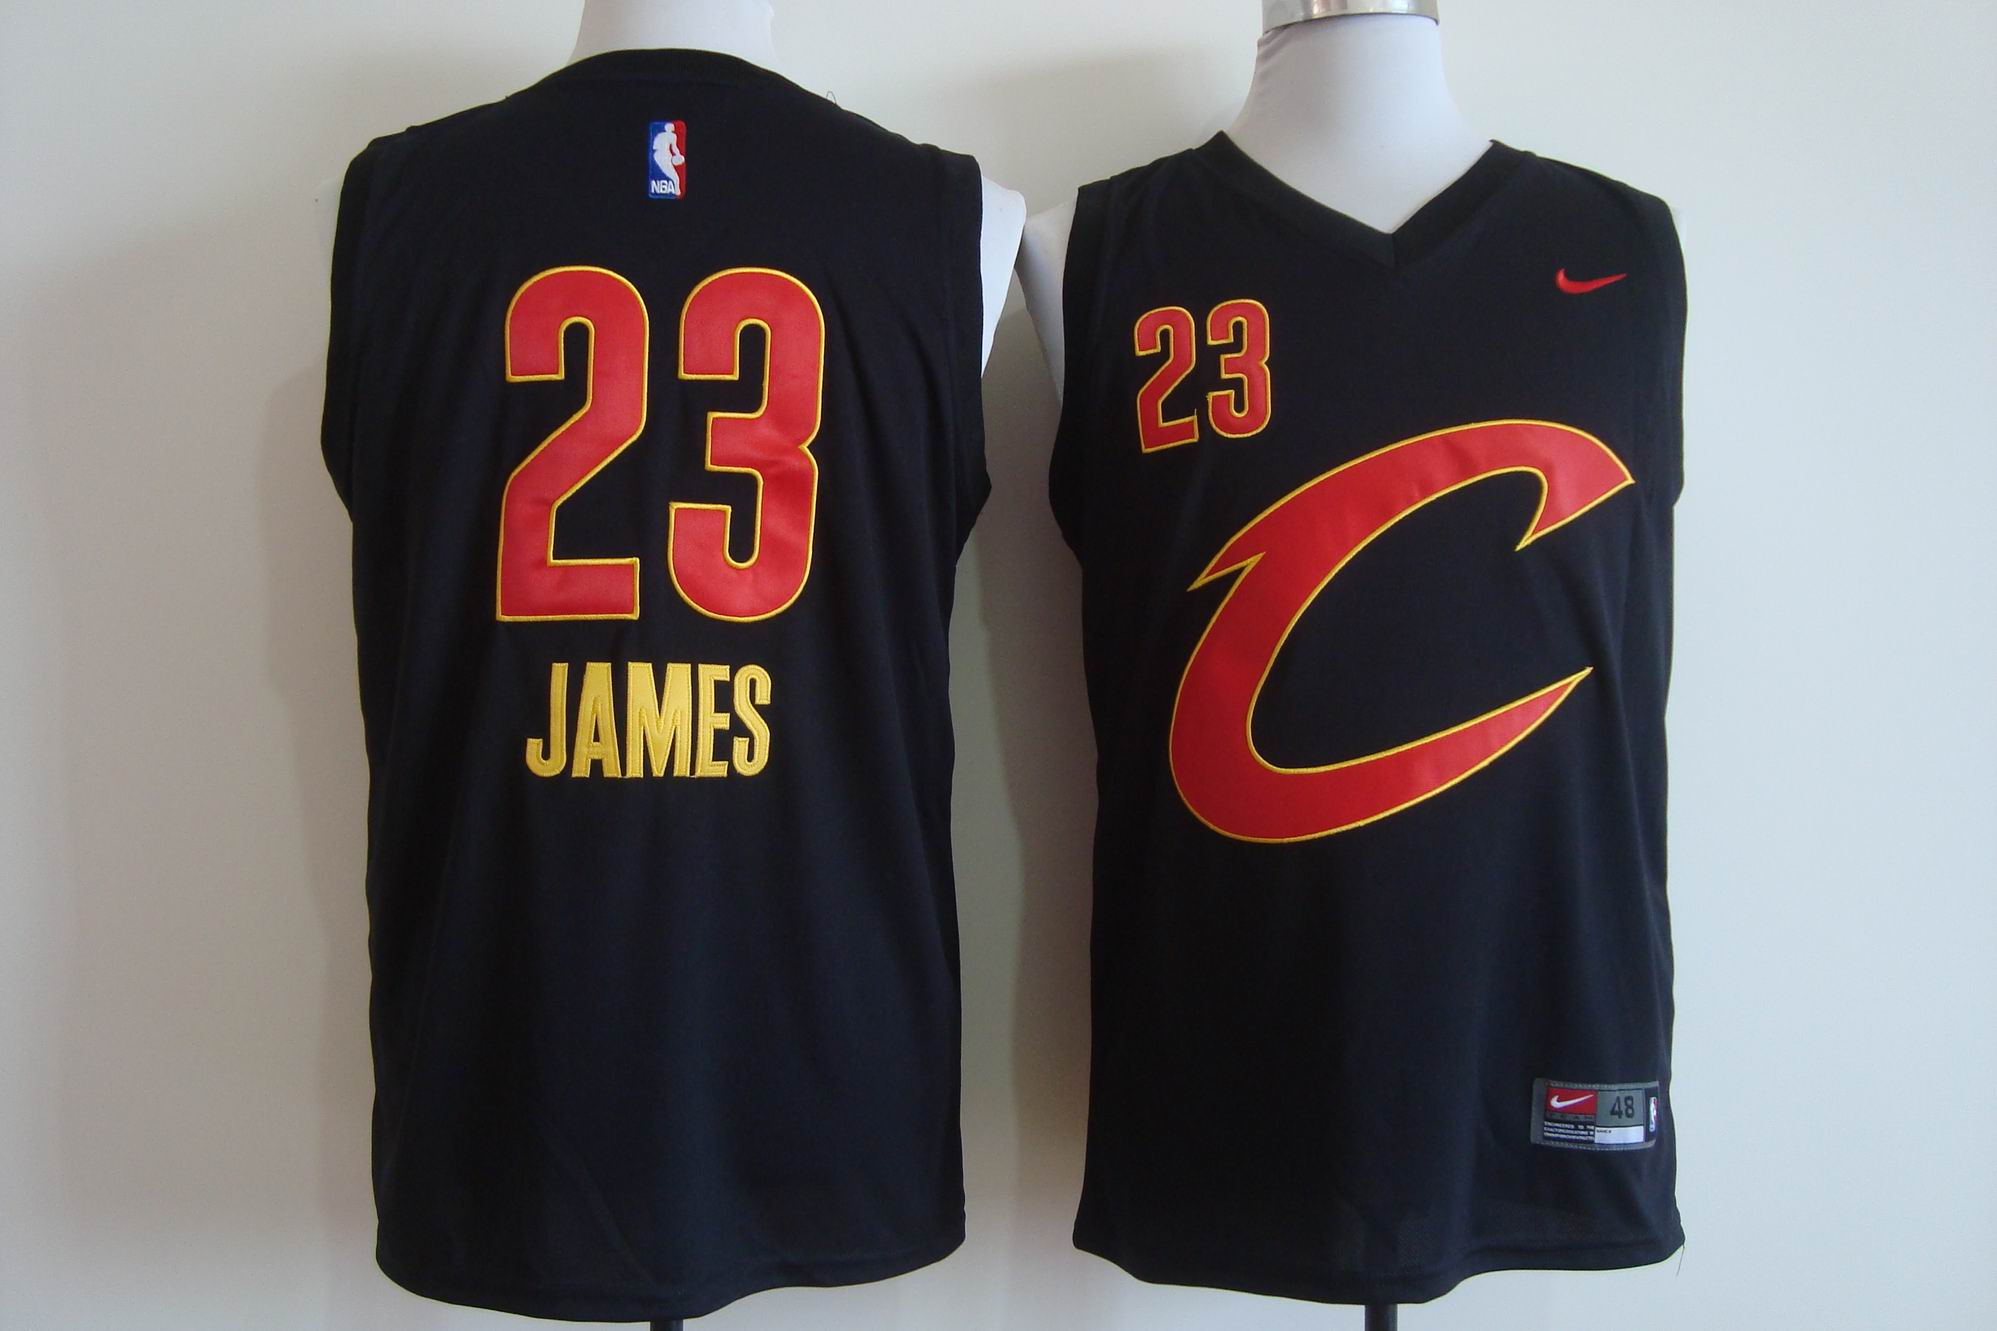 Men's Nike Cleveland Cavaliers #23 LeBron James Black Stitched NBA C Jersey